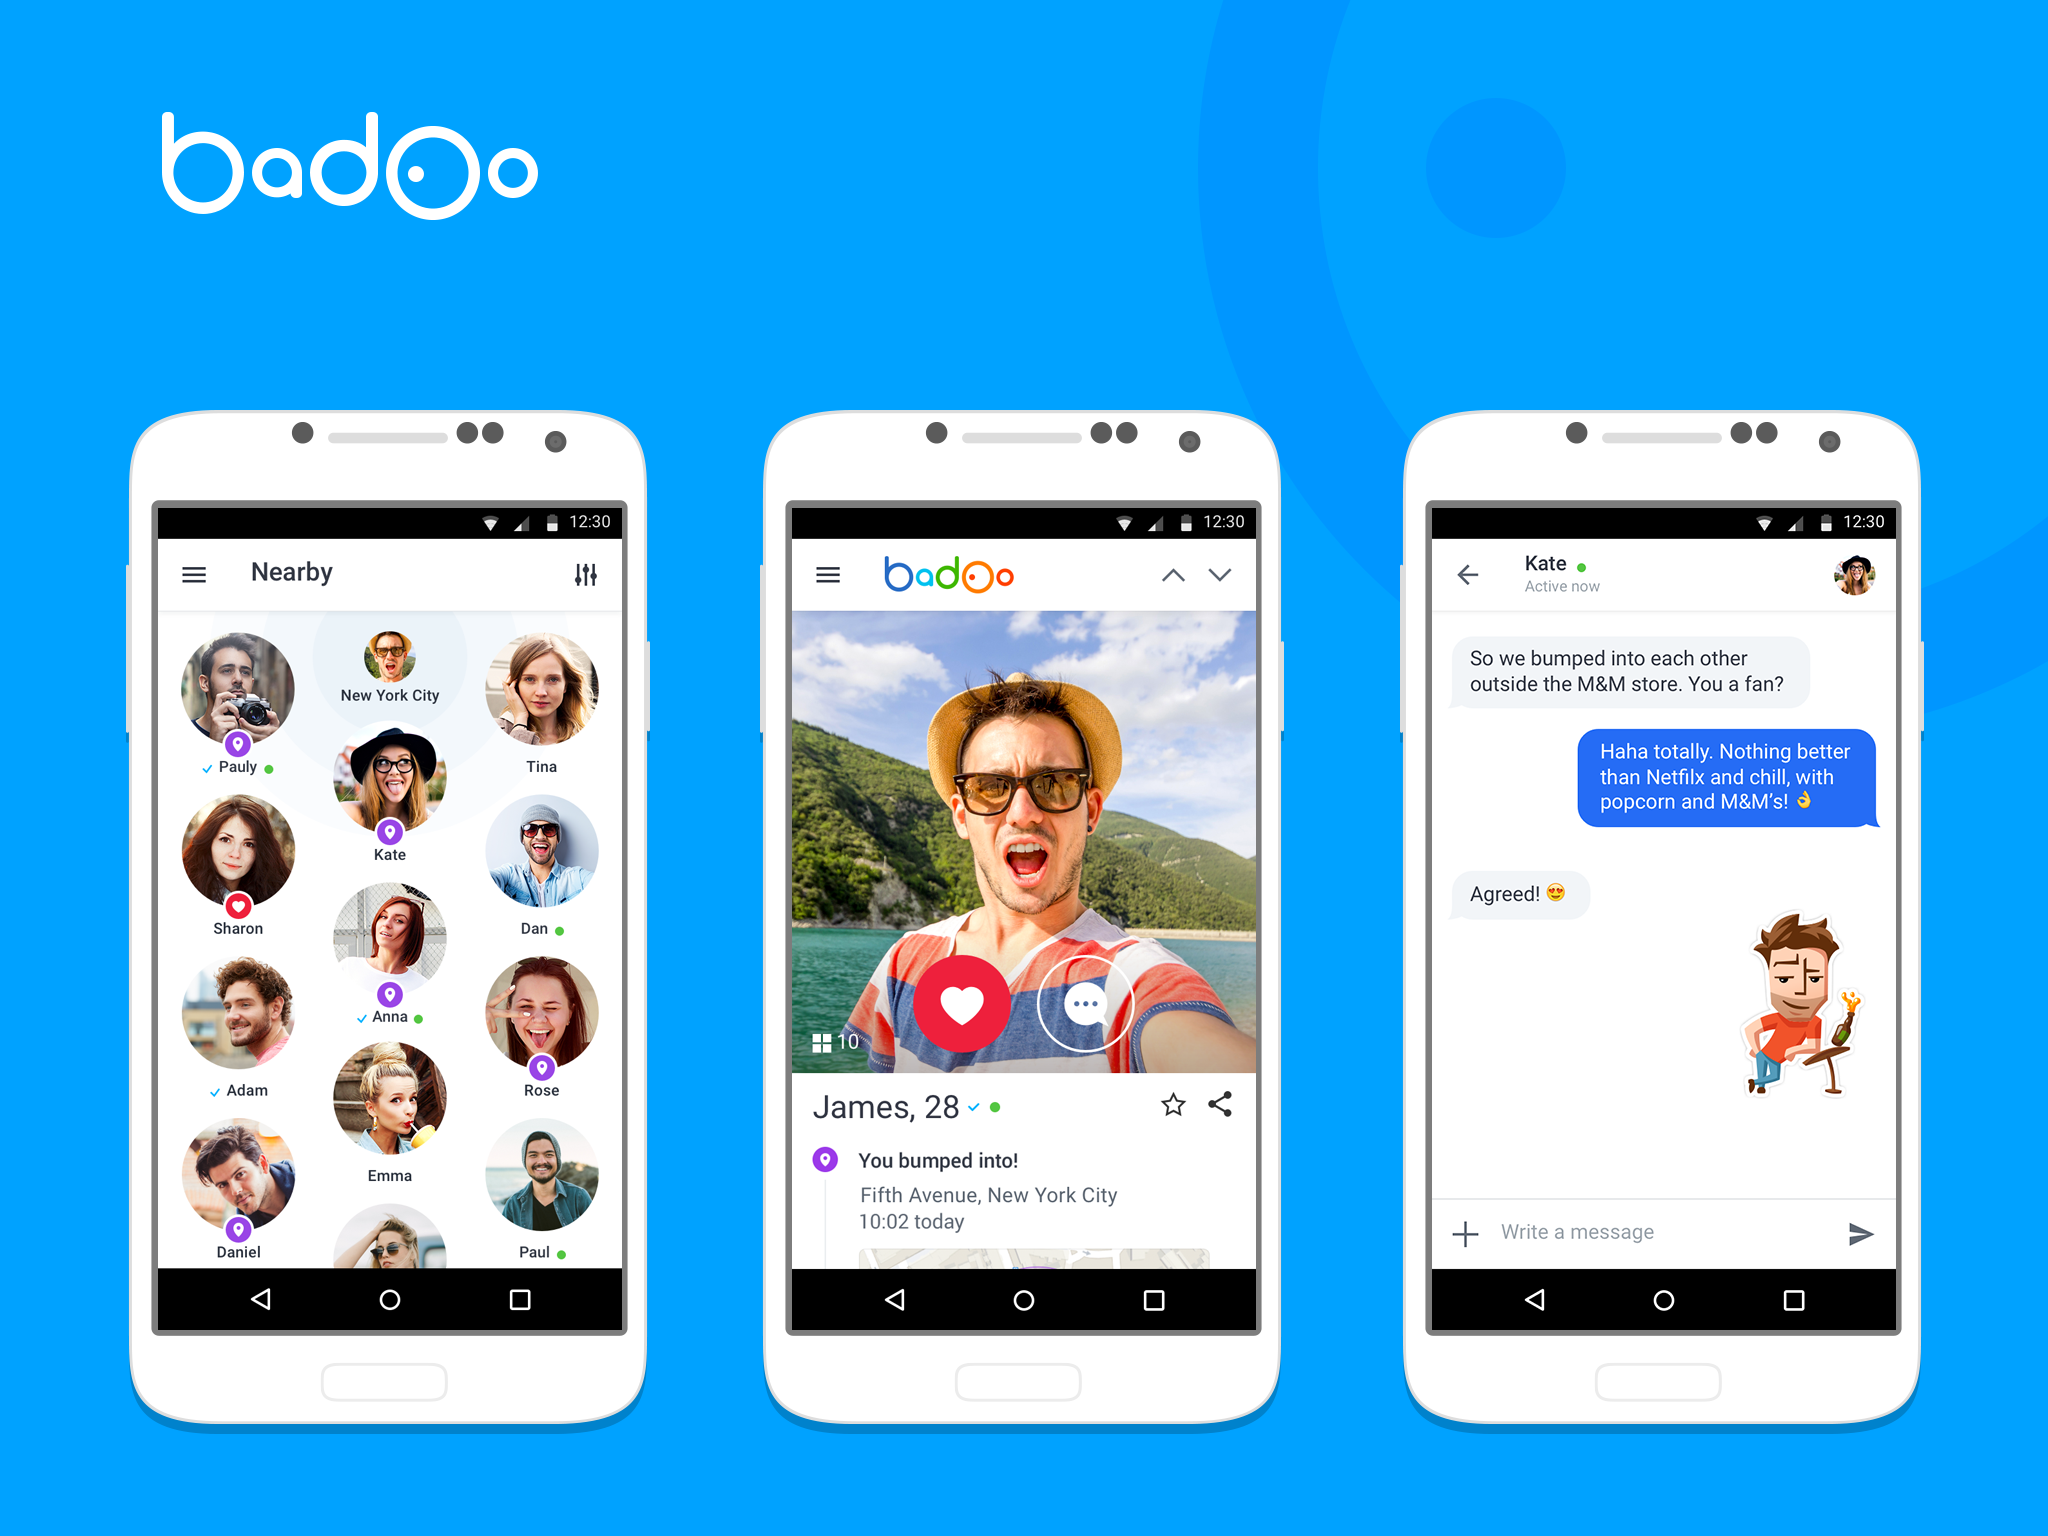 Get Badoo for your mobile phone